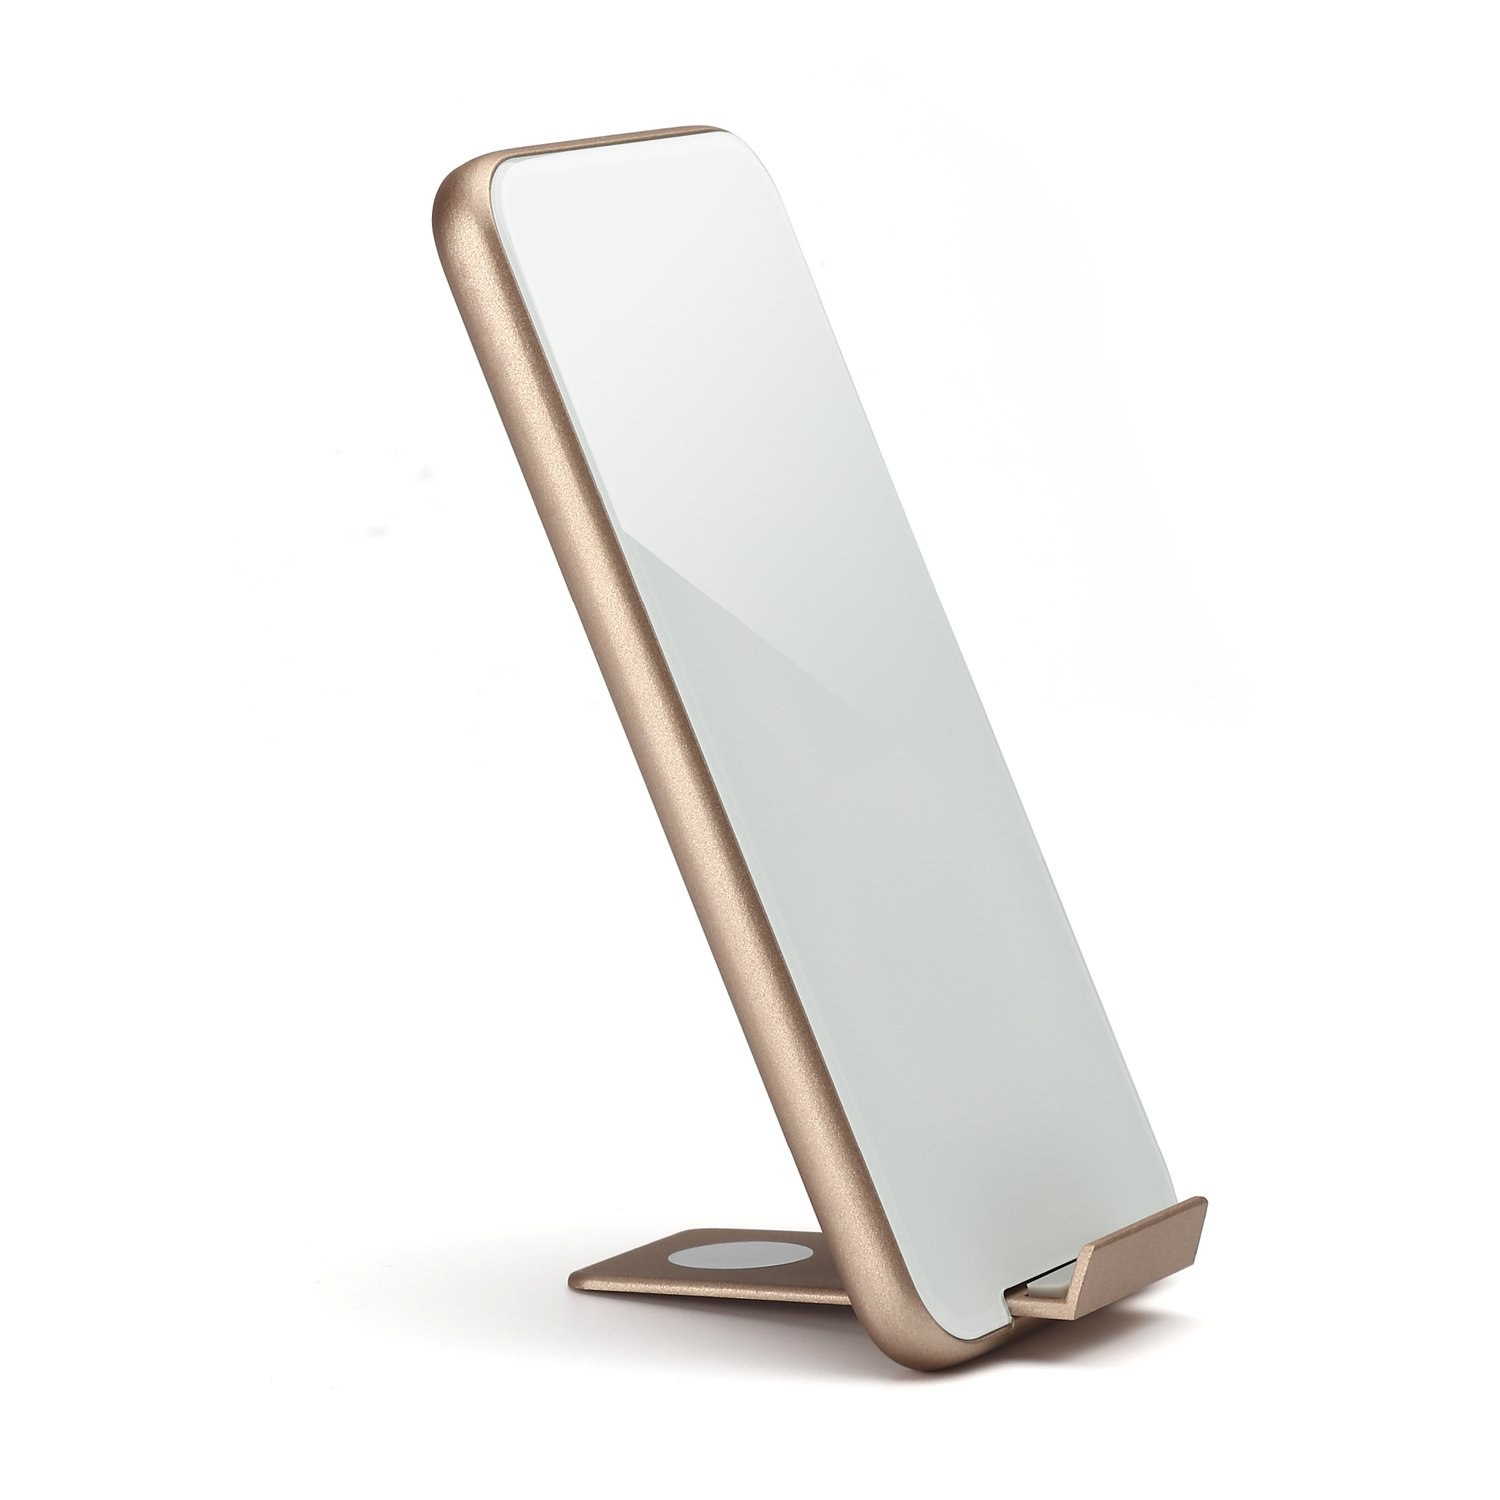 (10W Fast)Tooploo iPhone X Wireless Charger , Type C interface ,QI Fast Wireless Charging Pad Stand for iPhone X iPhone 8 and Plus, Samsung Galaxy Note8 S8 S8 Plus and all QI-Enabled Devices (Gold)